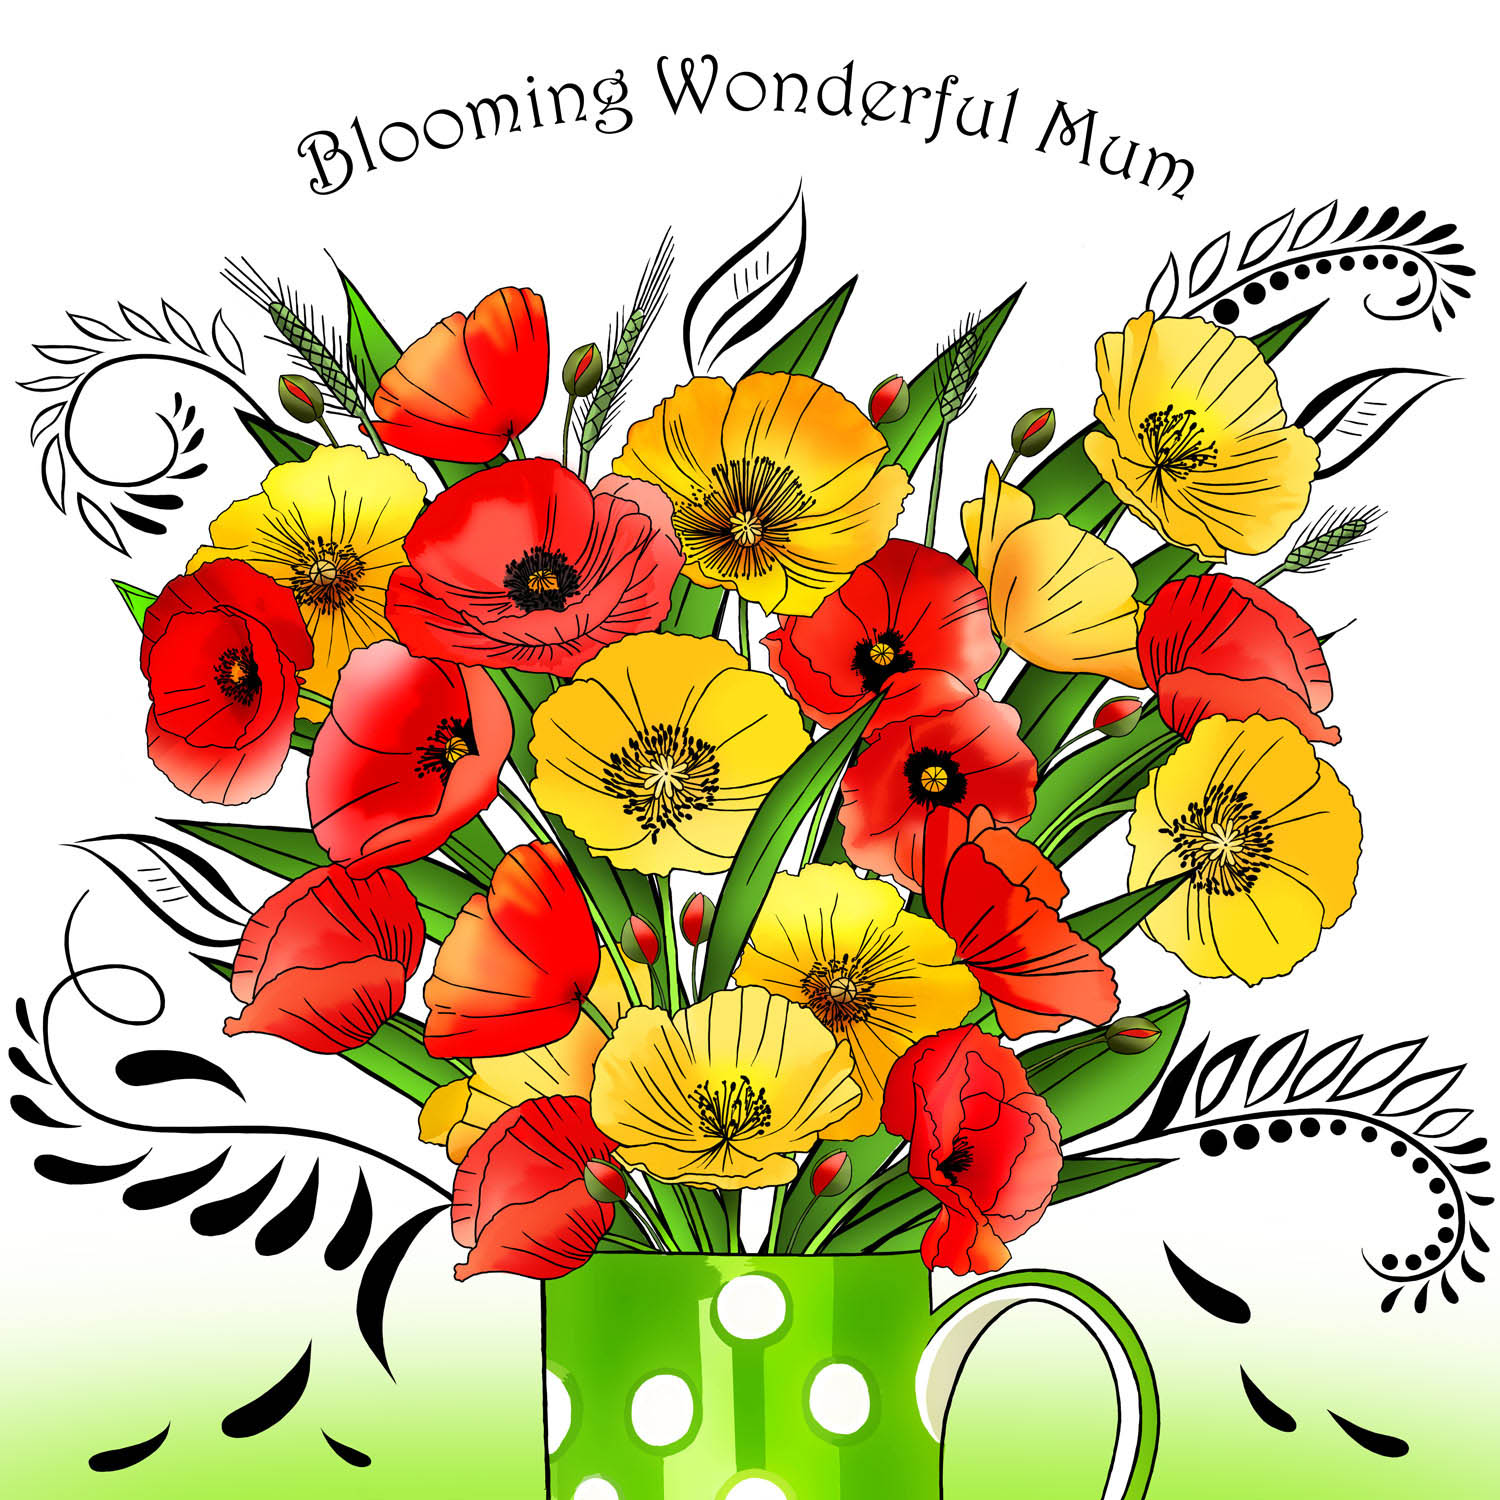 WONDERFUL MUM – Design Ref. 2661